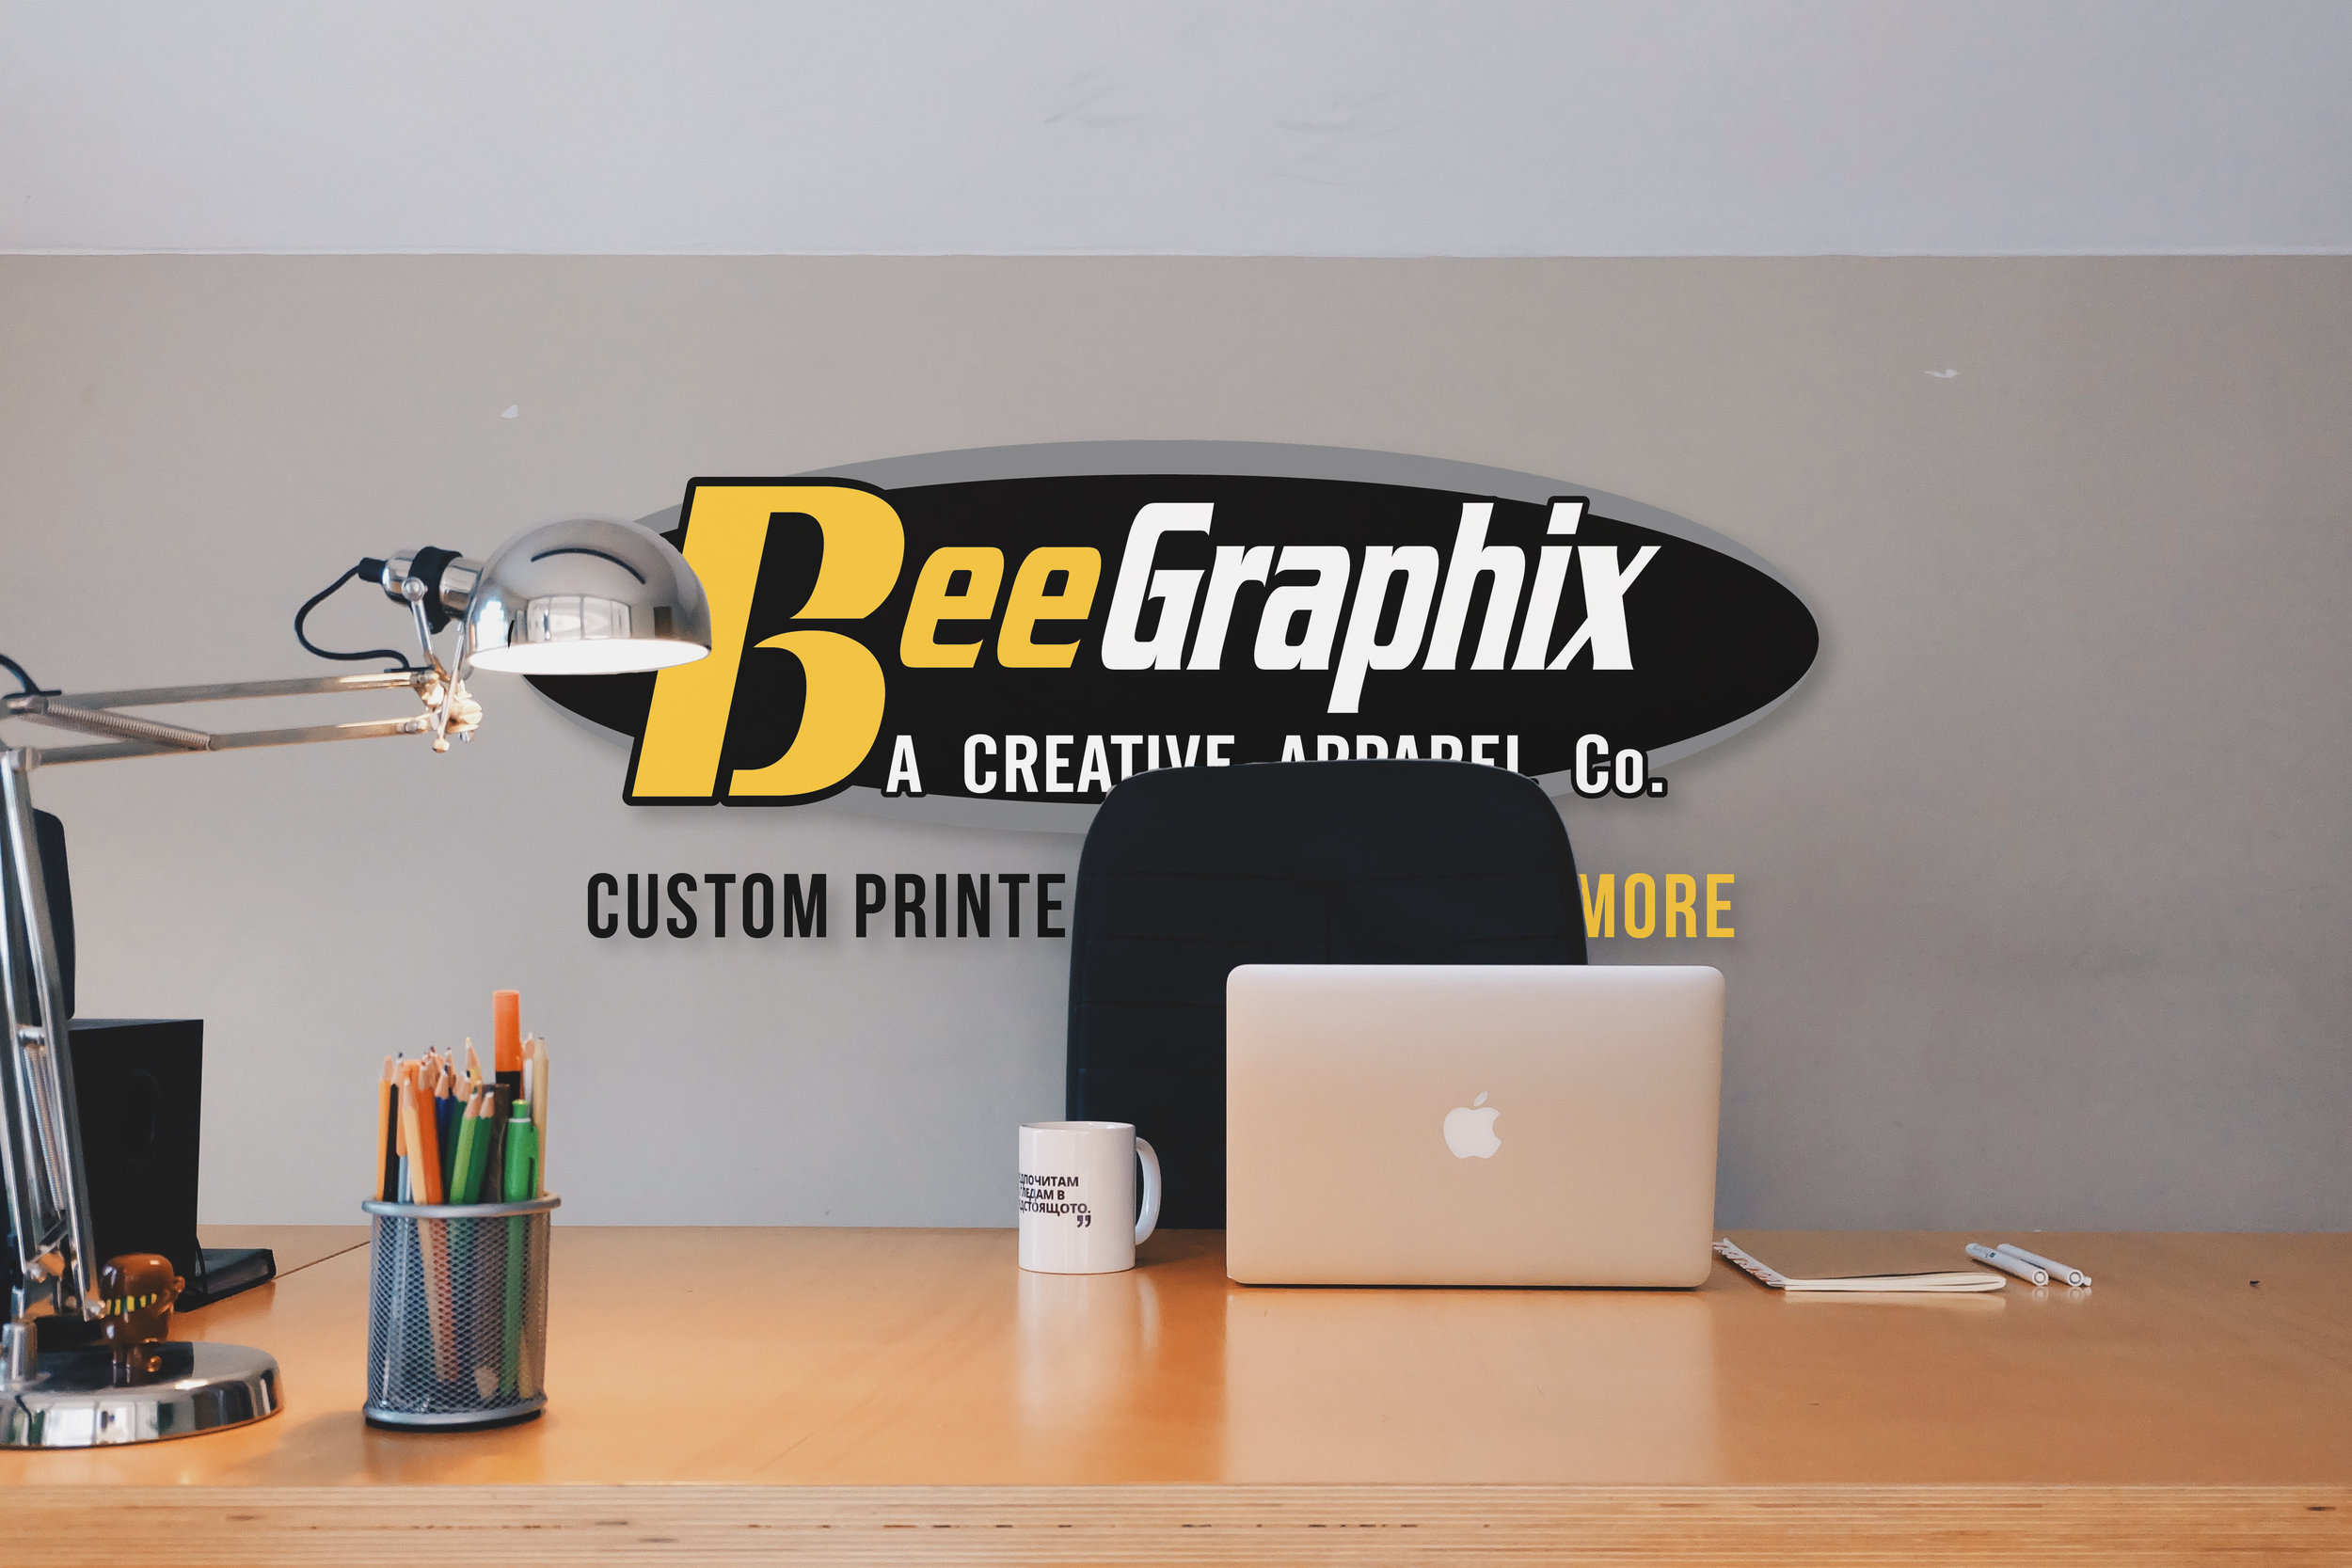 WINDOW & WALL GRAPHICS - Let us print the perfect wall graphic for your company or your home! Company logos, team logos, stores front stickers, wall decor, advertisements, inspirational sayings, quotes or personal expression.